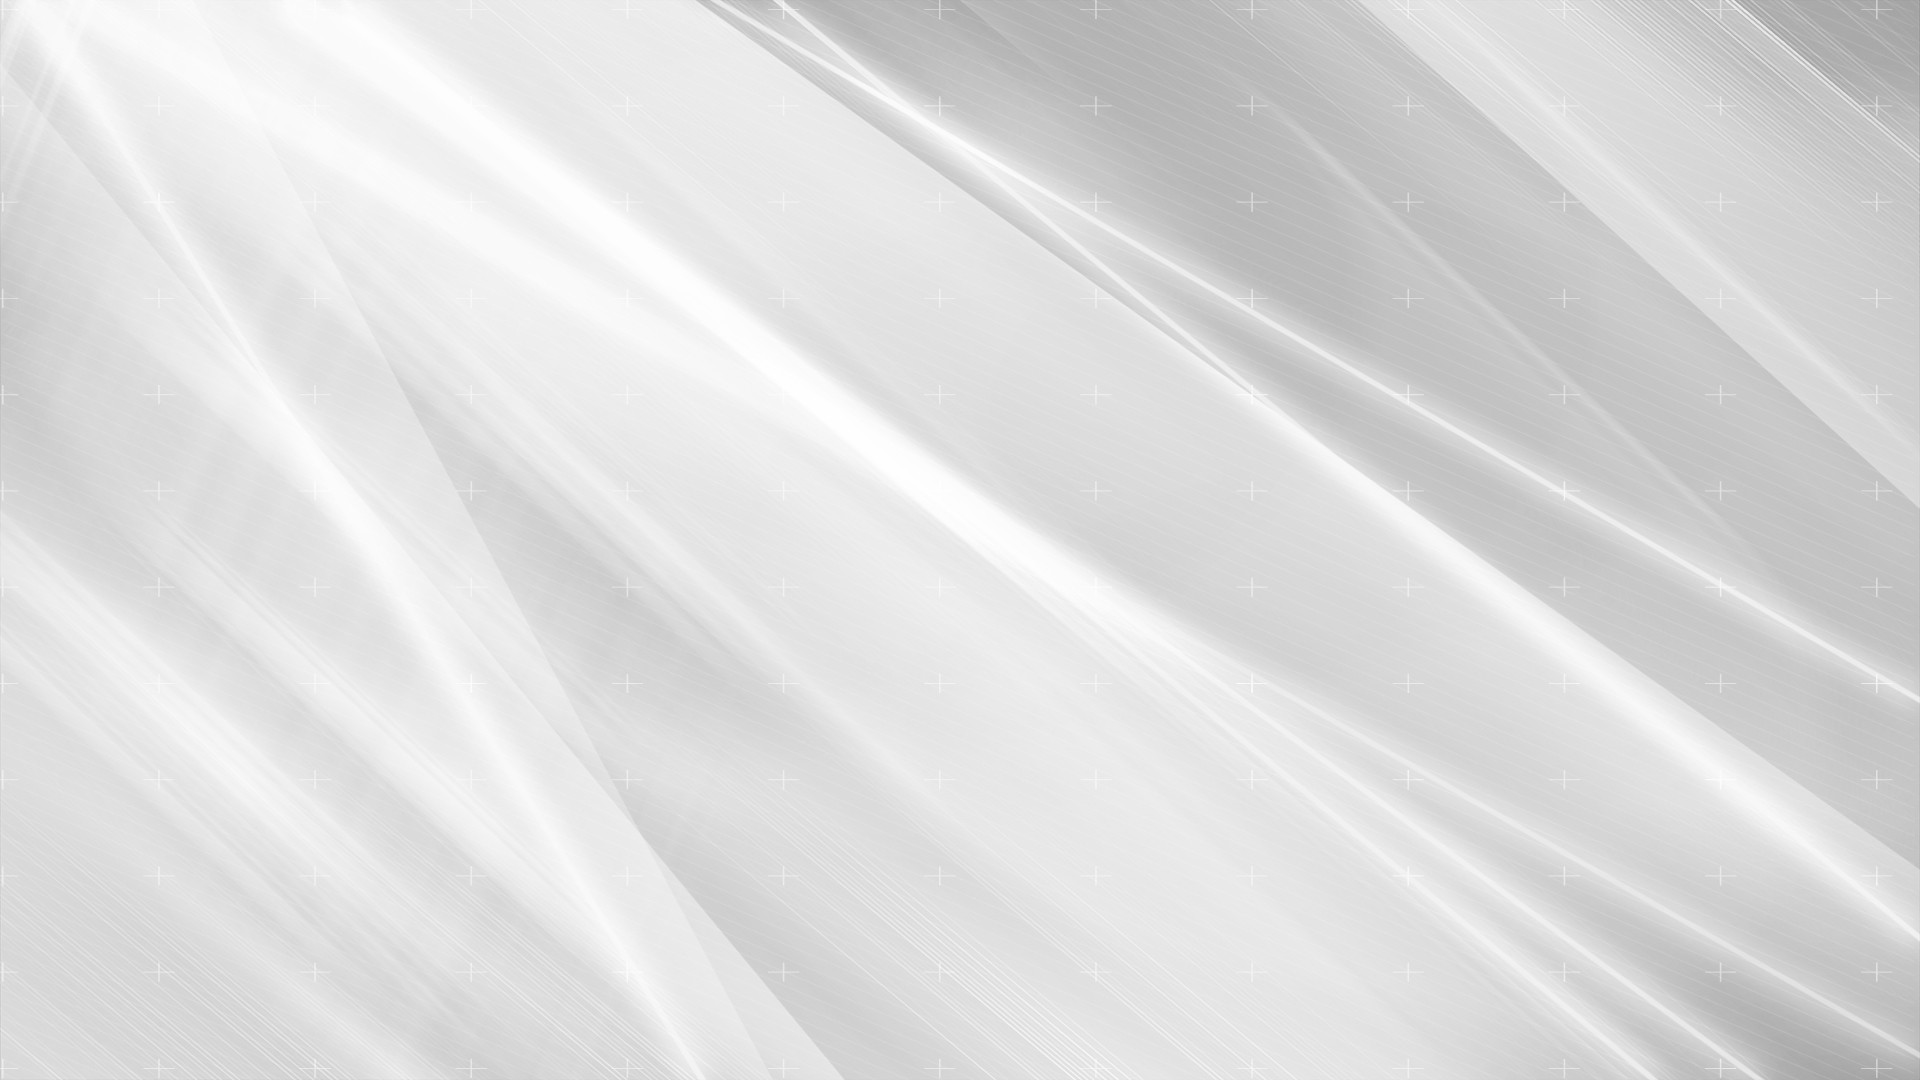 White abstract background download free stunning - White abstract background hd ...